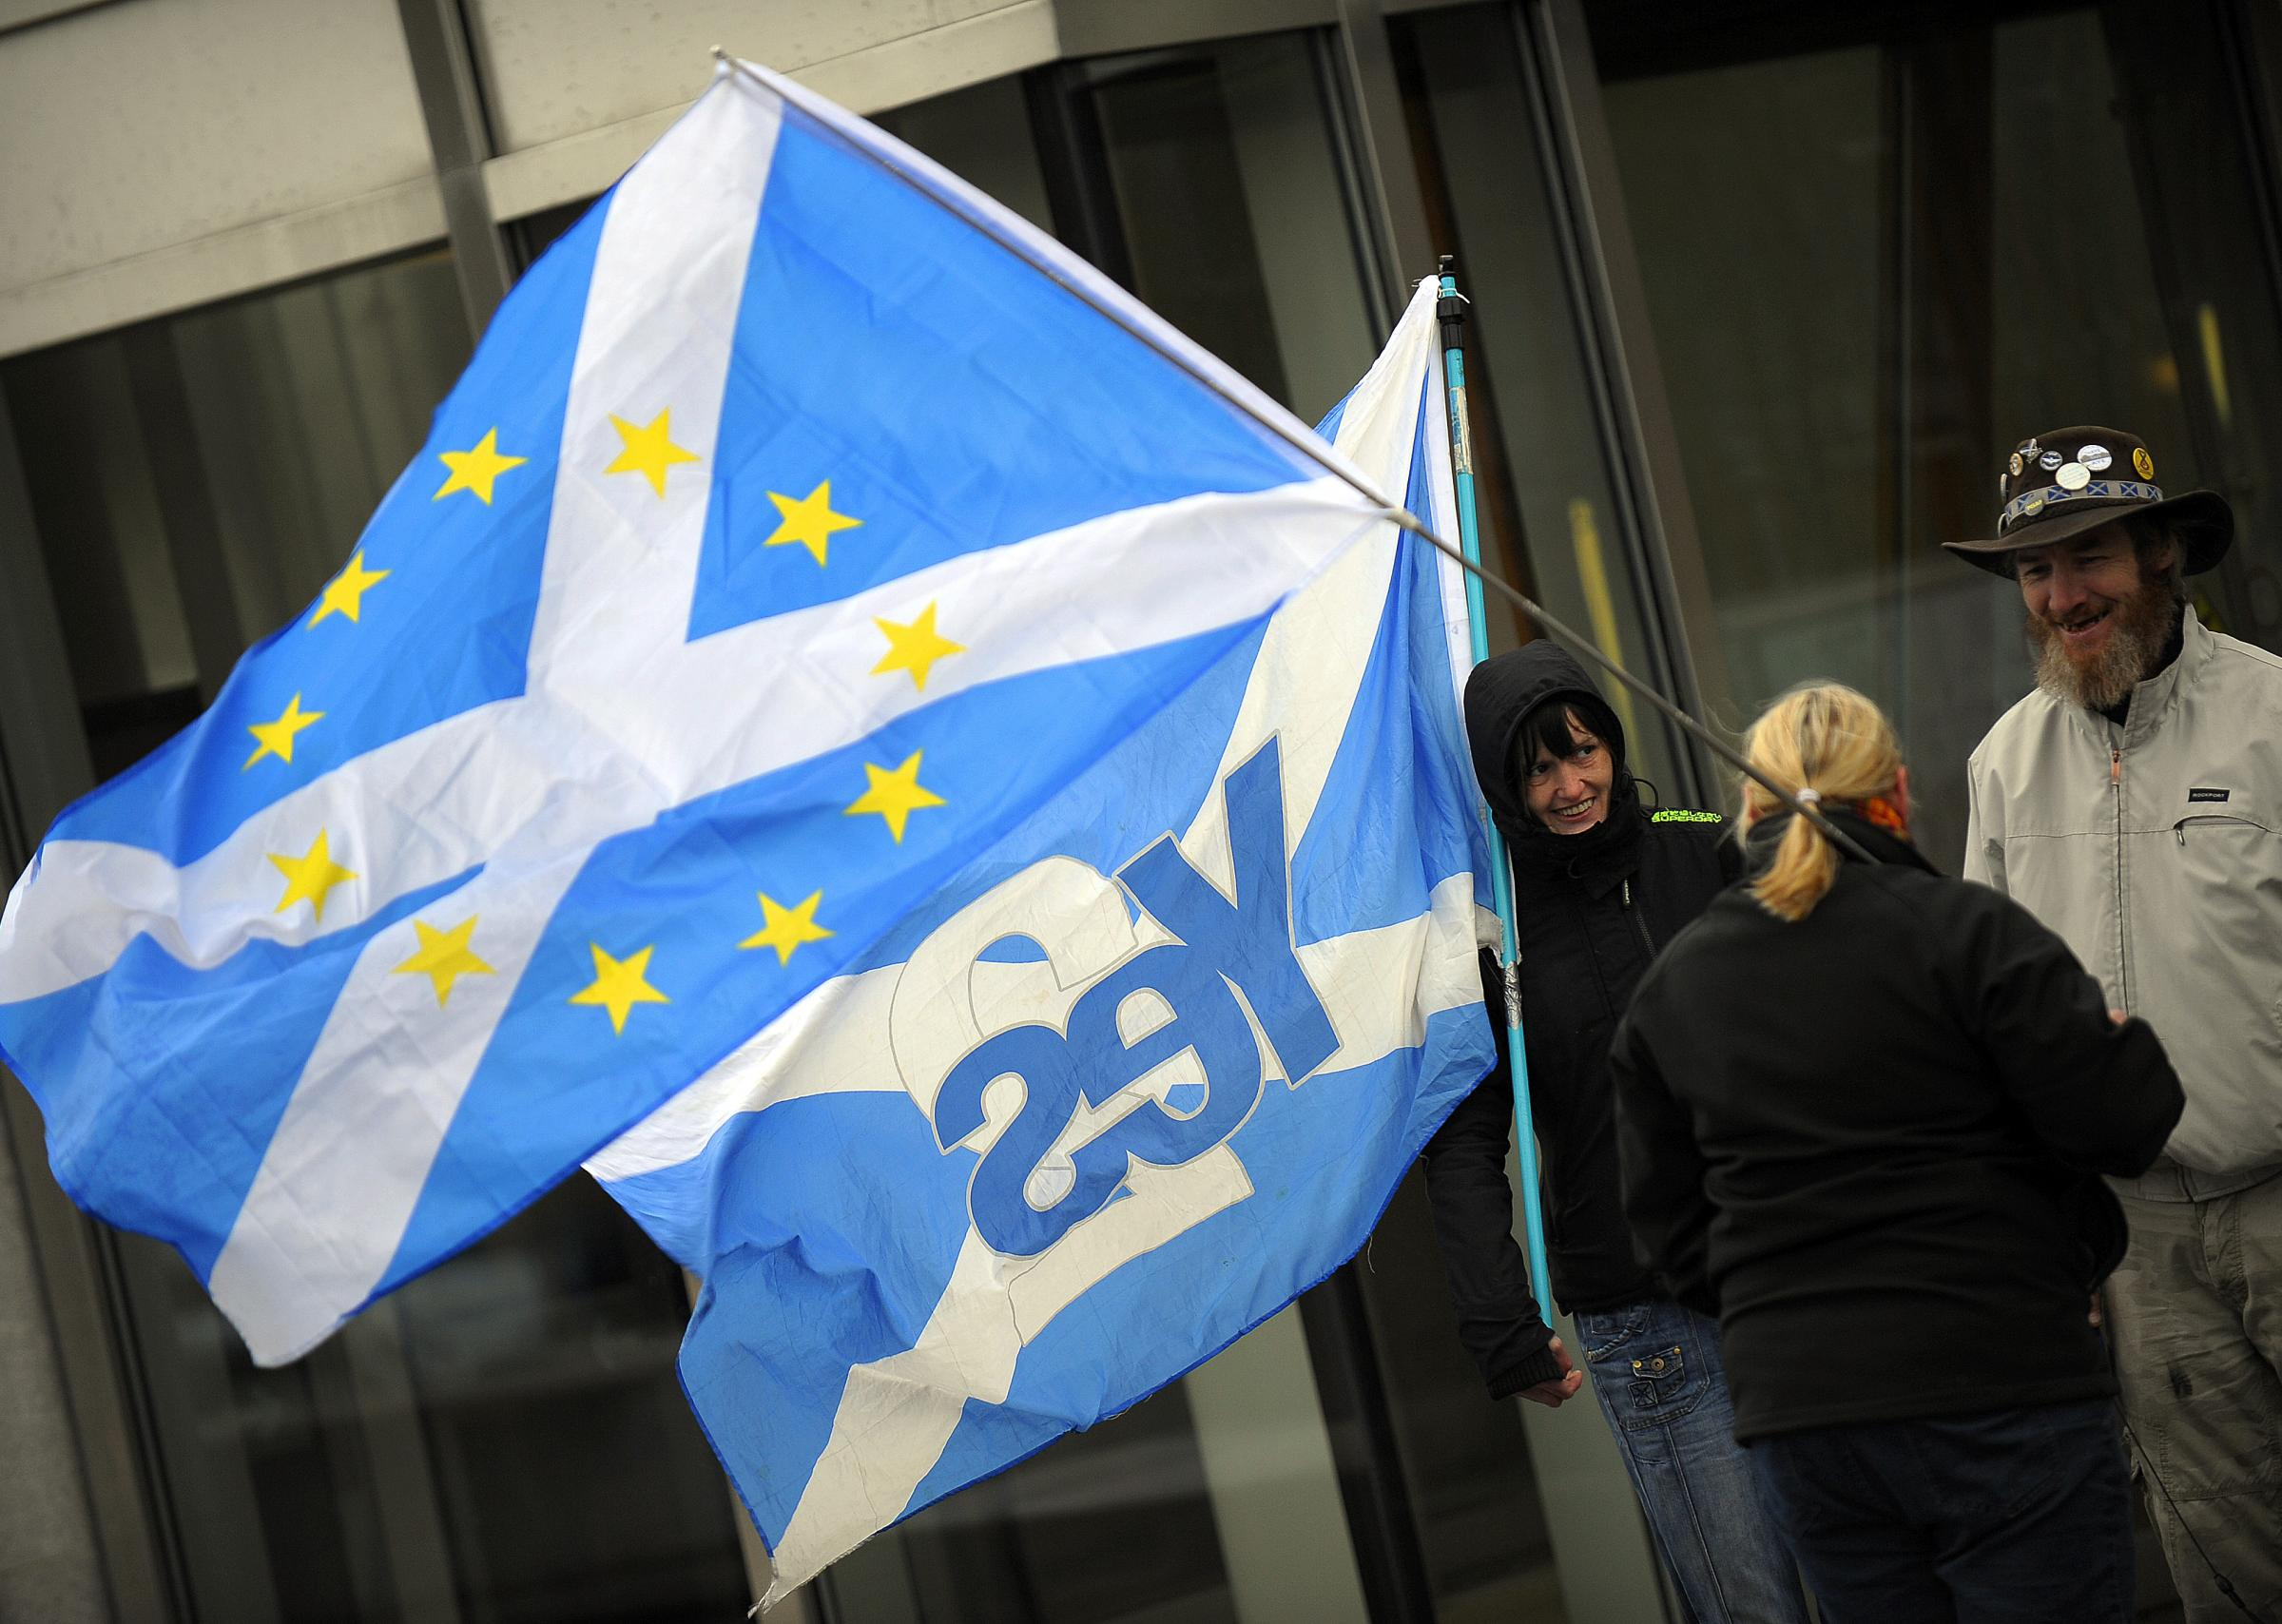 Indyref2 is becoming more and more of a popular idea amid the UK's Brexit chaos